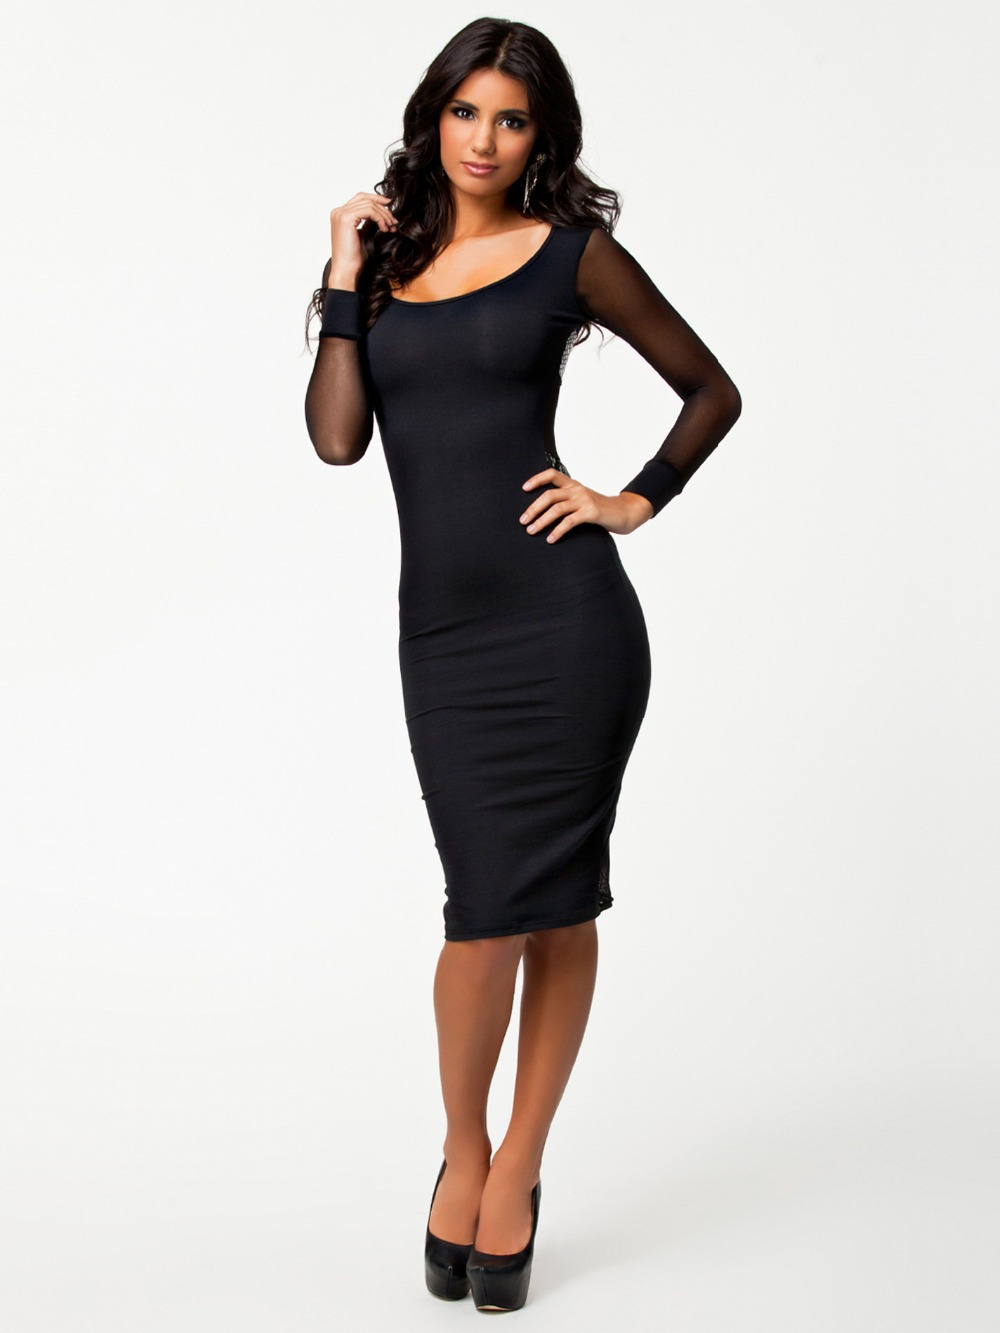 R7780 Long sleeve dress female 2015 Ohyeah company wholesale and retail dress black O-neck mesh high quality dresses for women(China (Mainland))